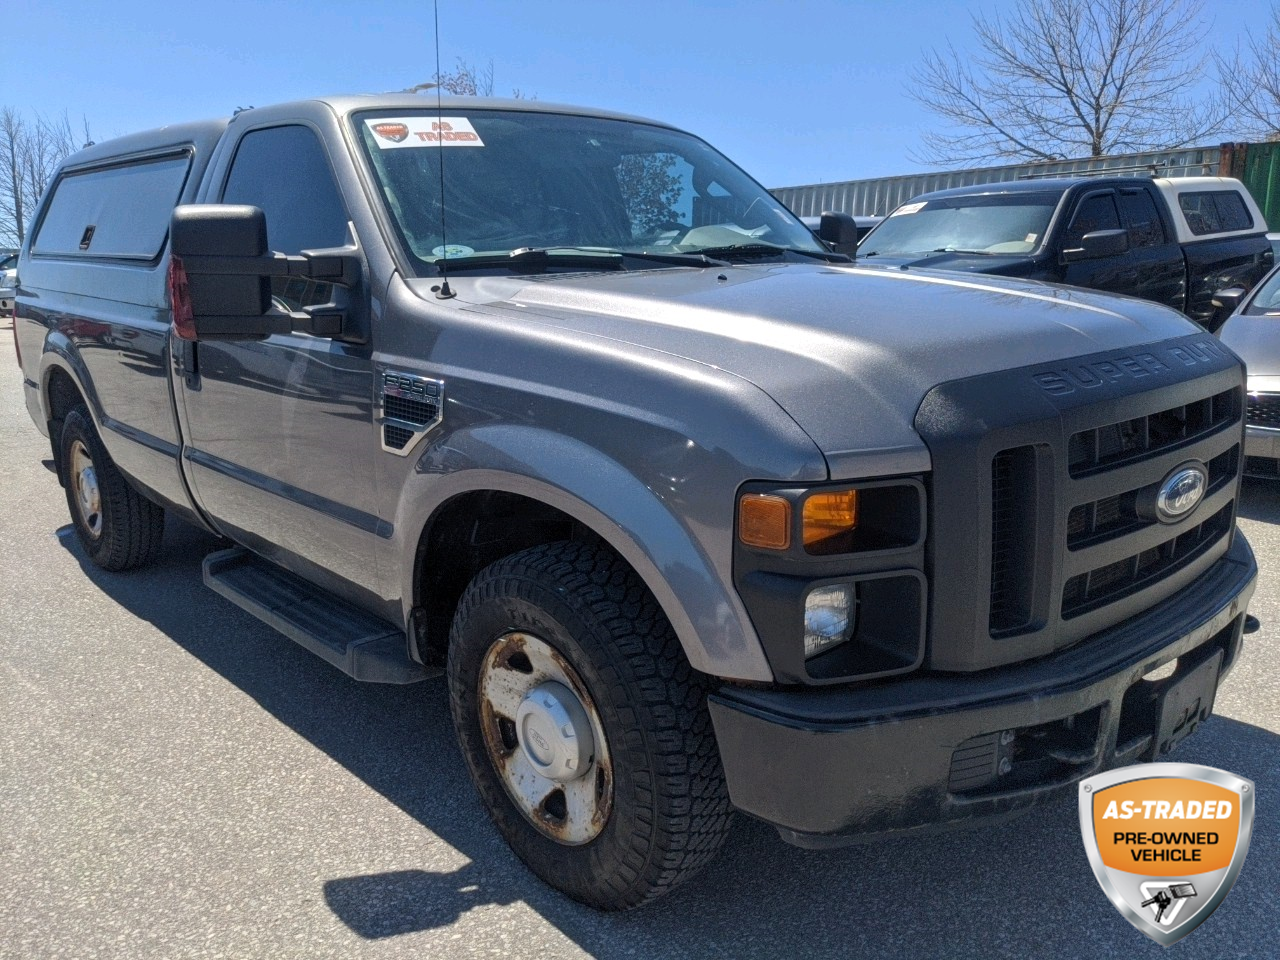 used 2009 Ford F-250 car, priced at $5,999